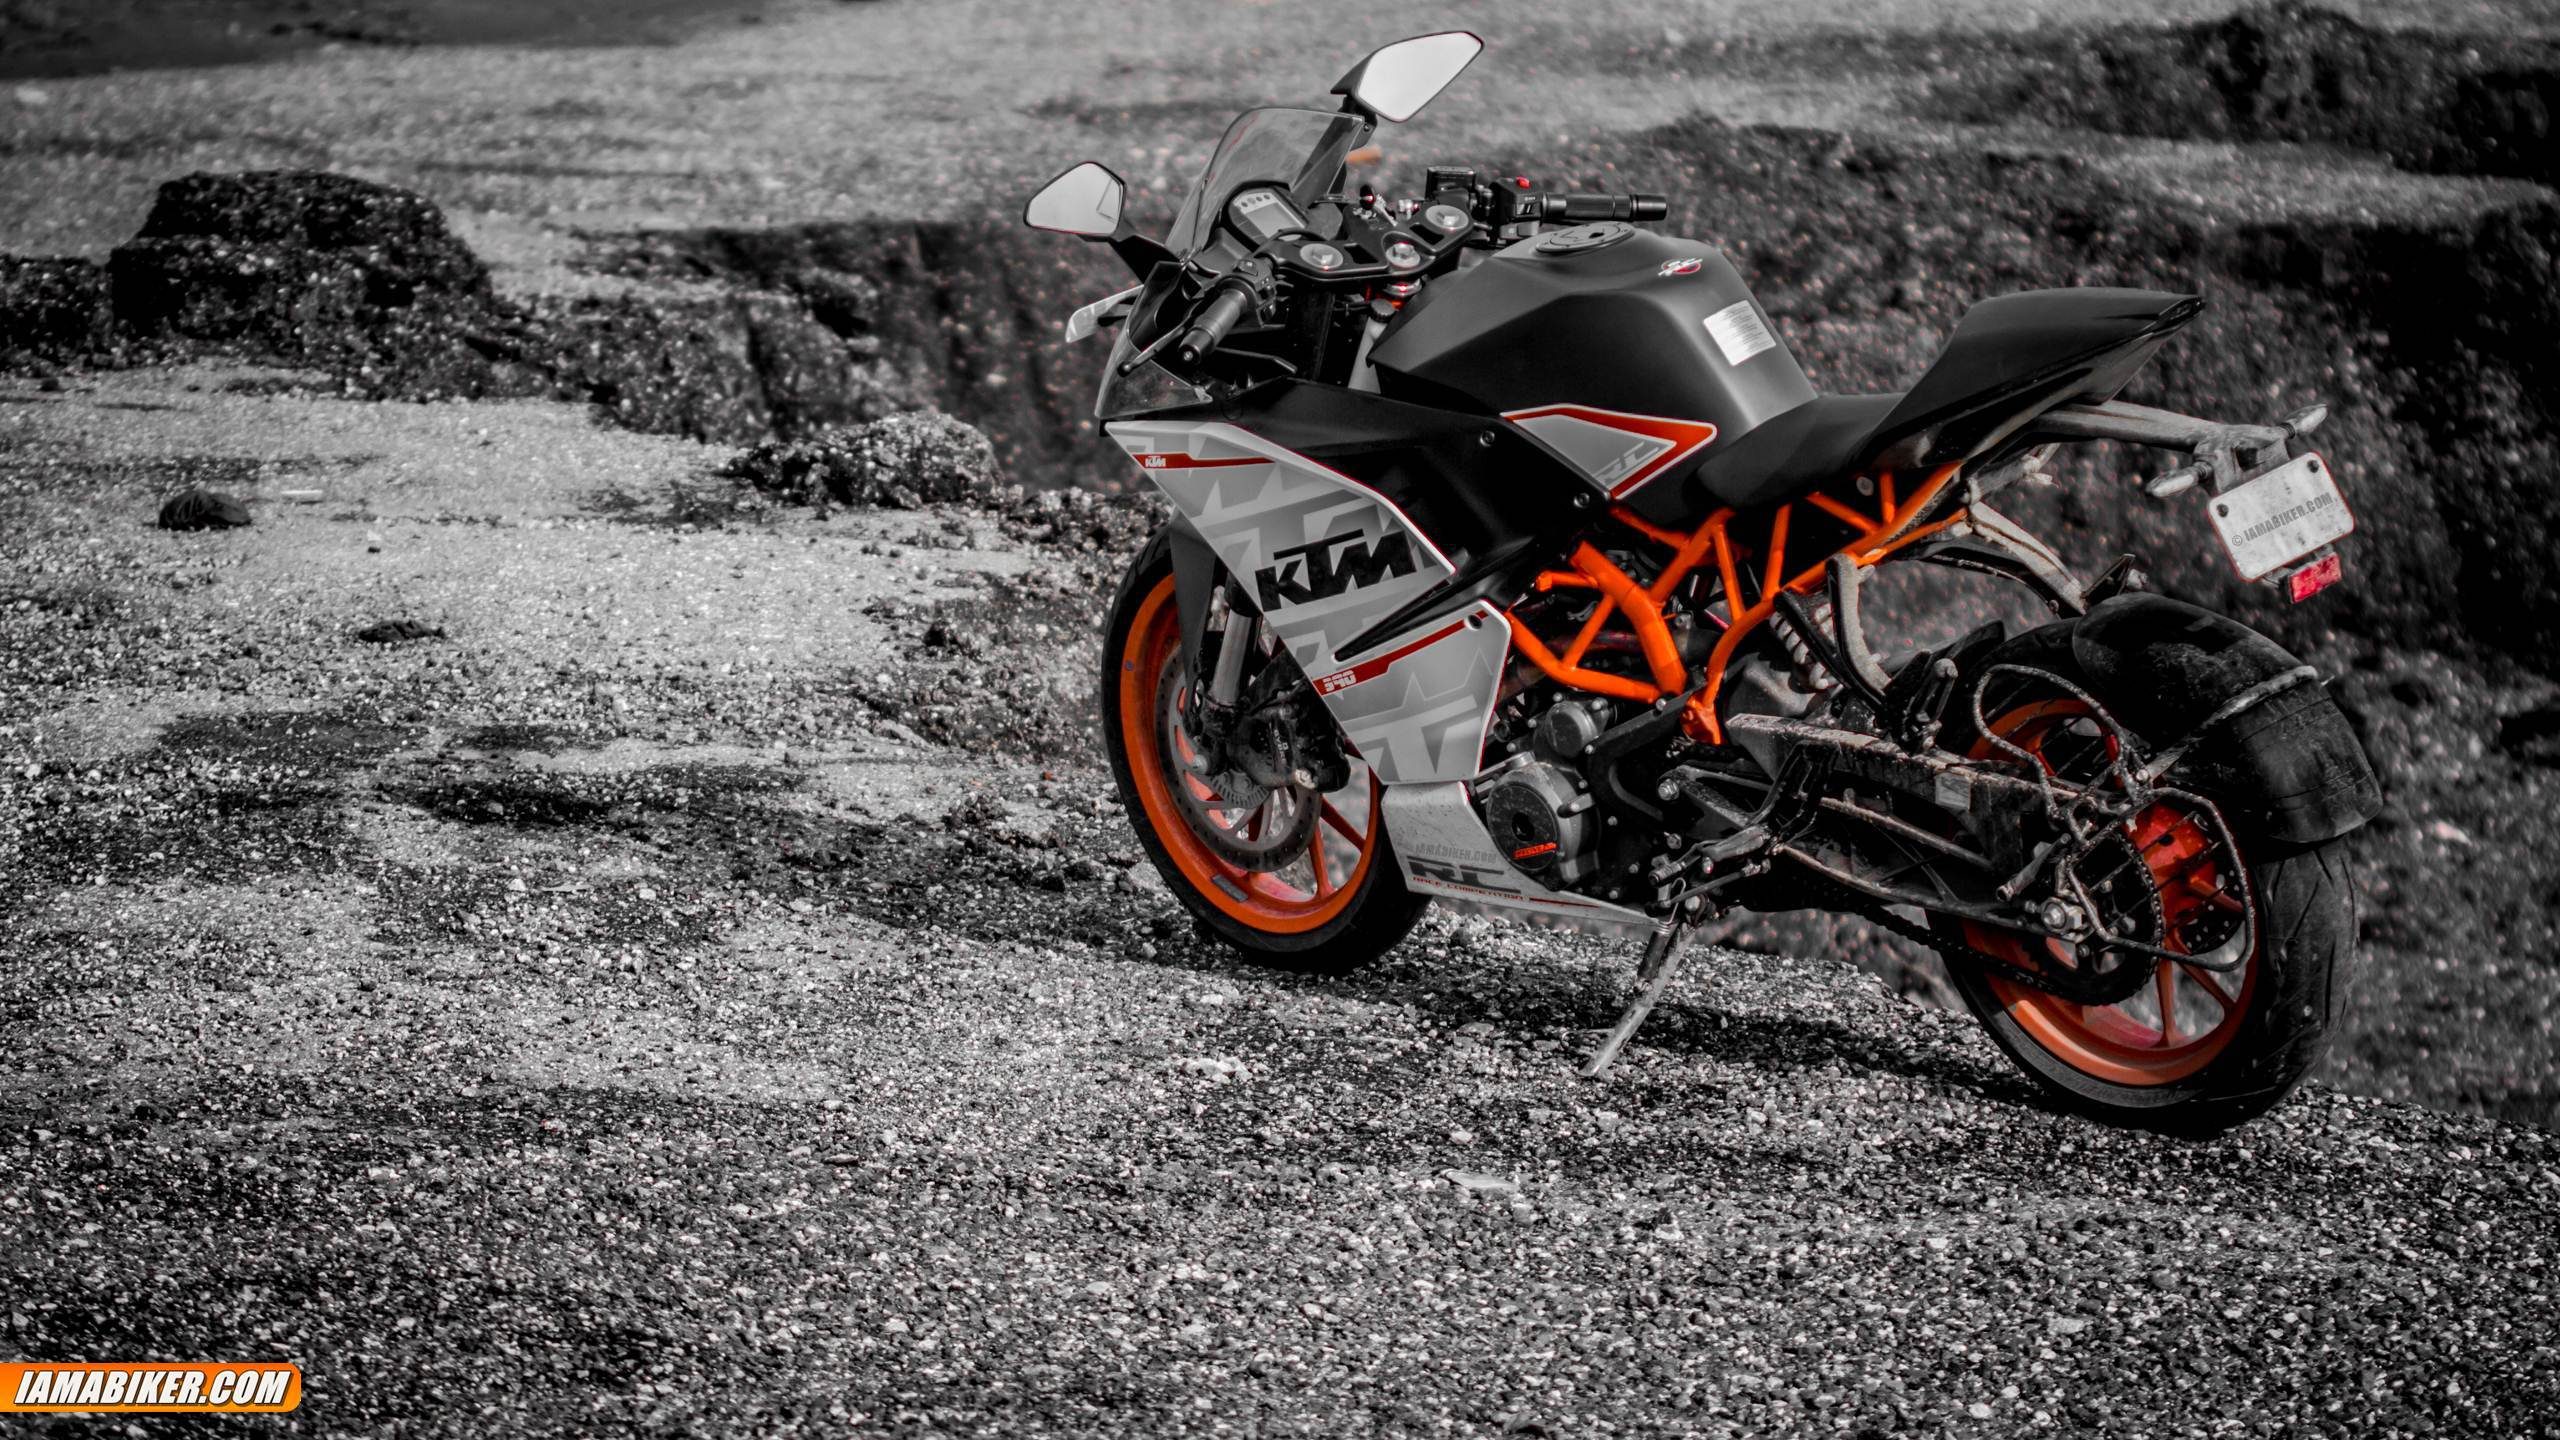 Ktm Bike Wallpapers Wallpaper Cave